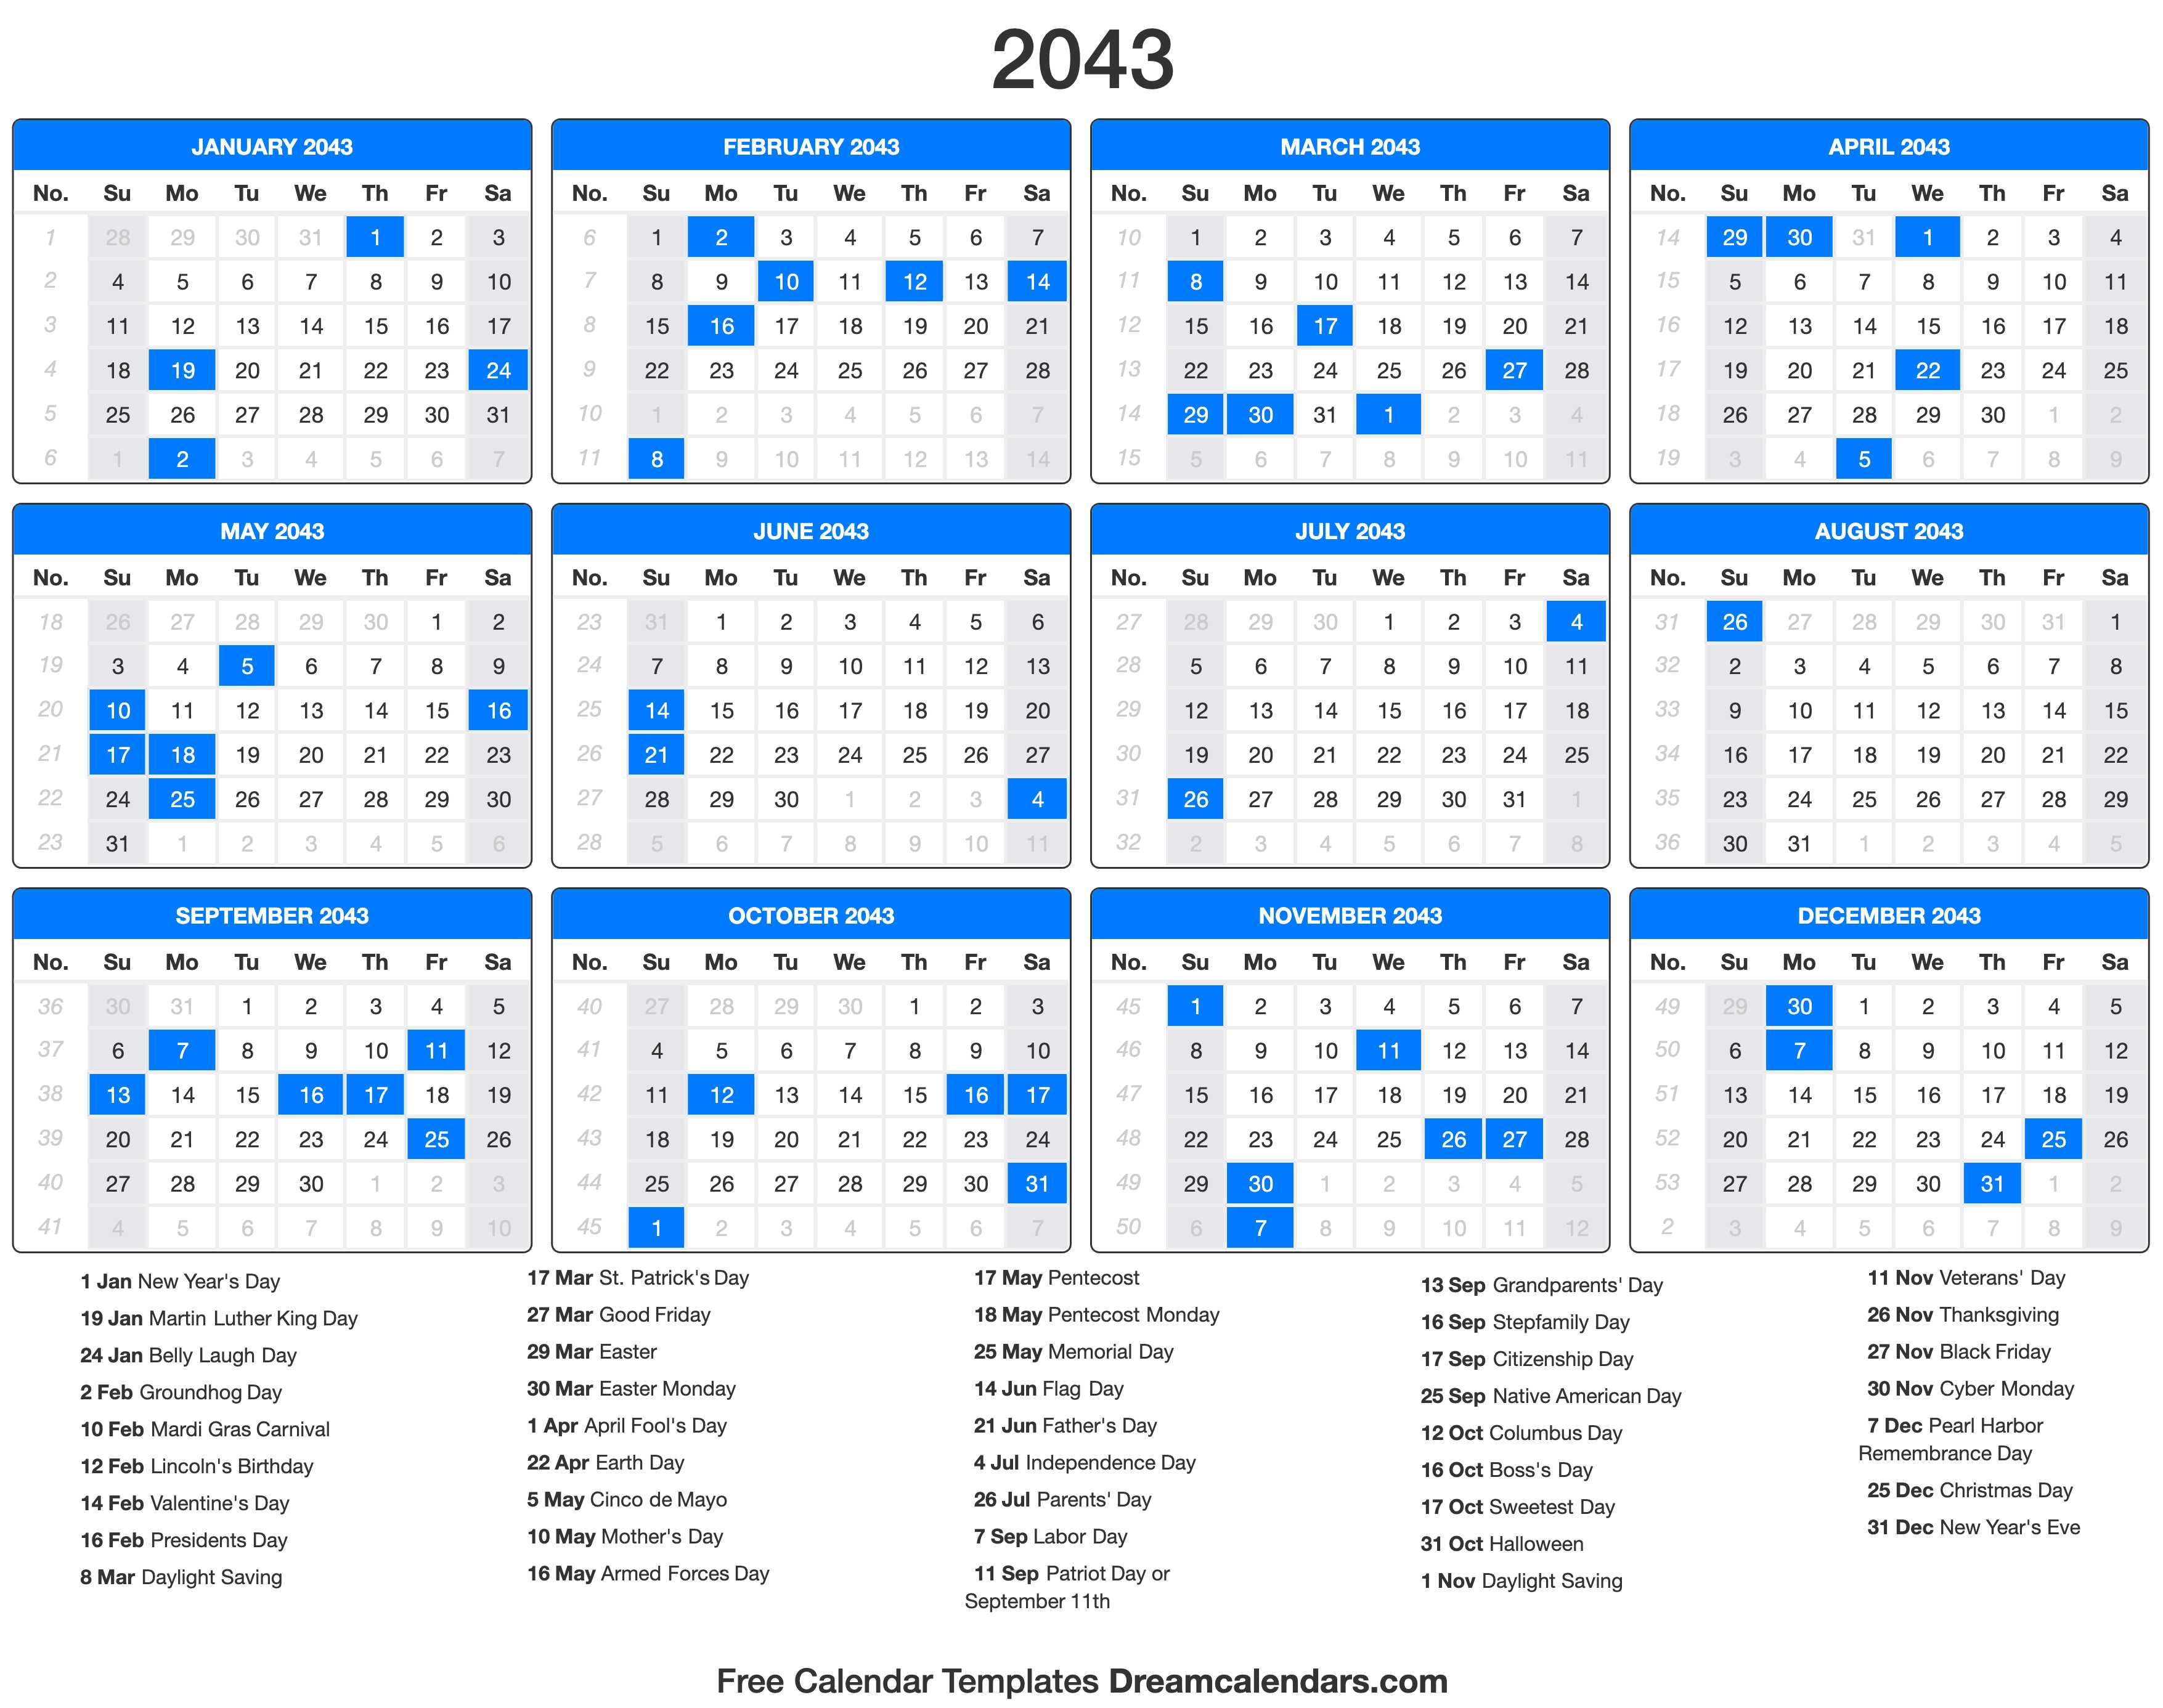 2043 Calendar with holidays